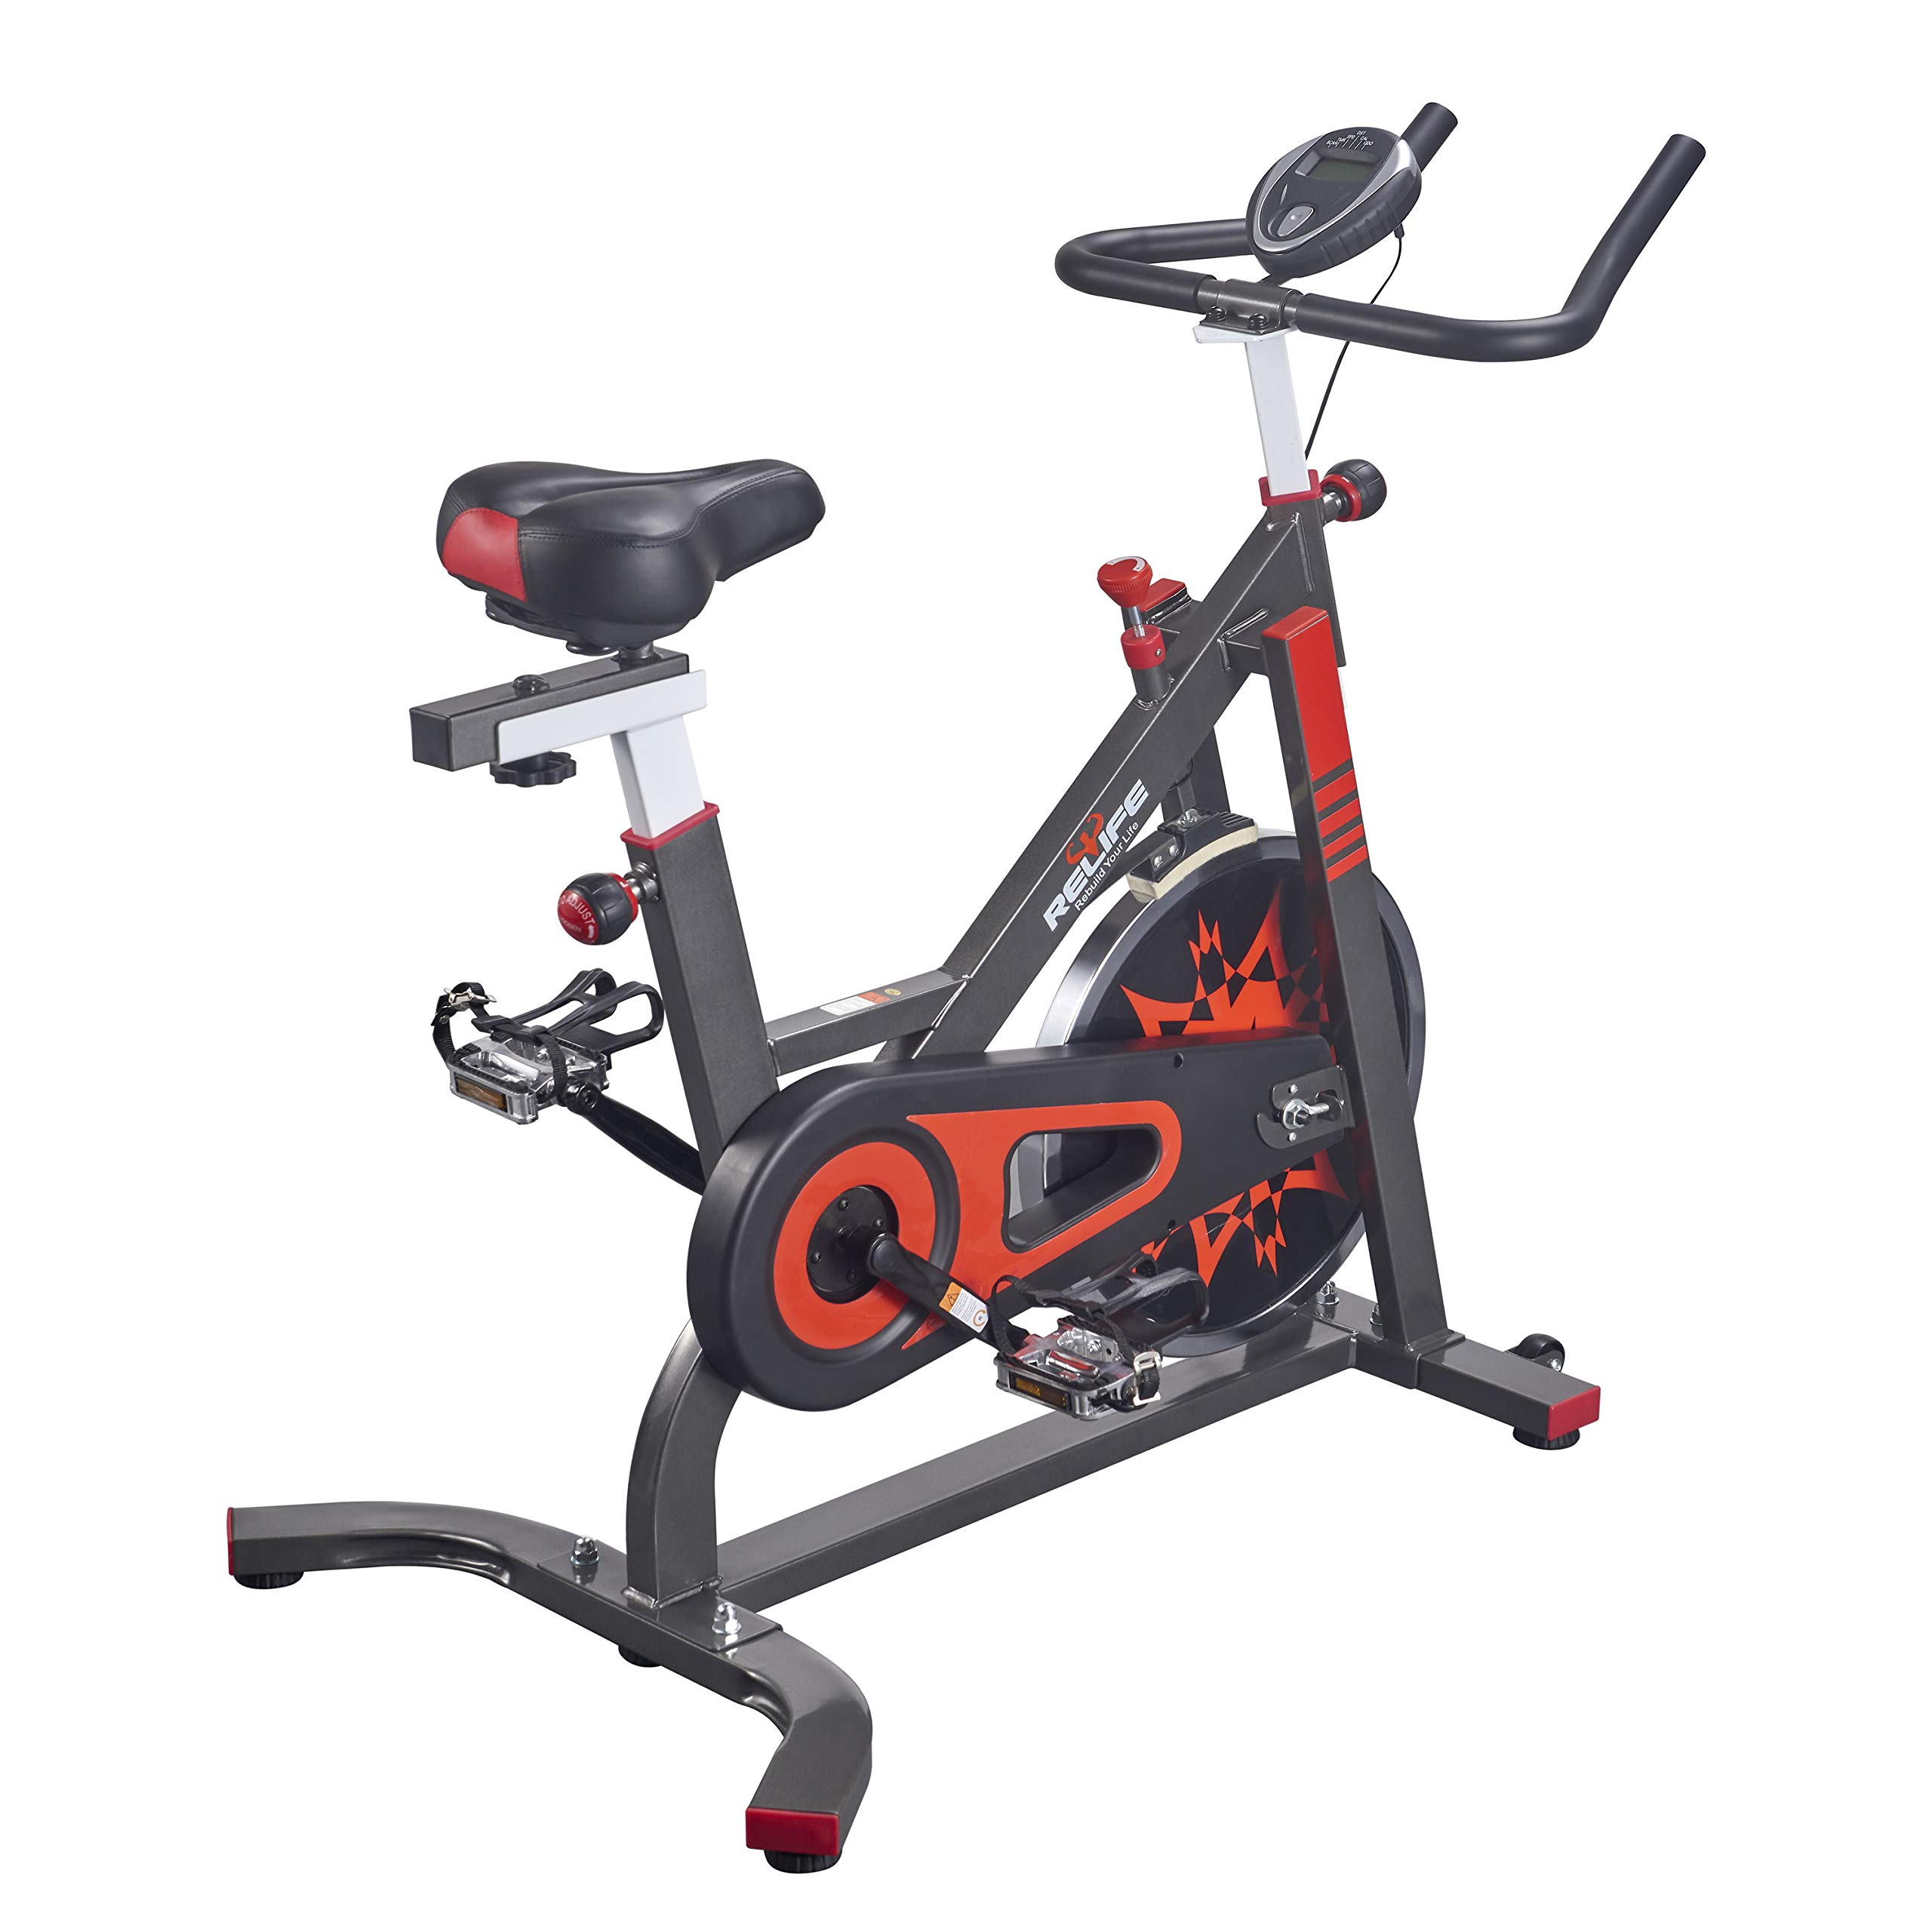 RELIFE REBUILD YOUR LIFE Exercise Bike Indoor Cycling Bicycle Stationary Bikes Cardio Workout Machine Upright Bike Belt Drive Home Gym by RELIFE REBUILD YOUR LIFE